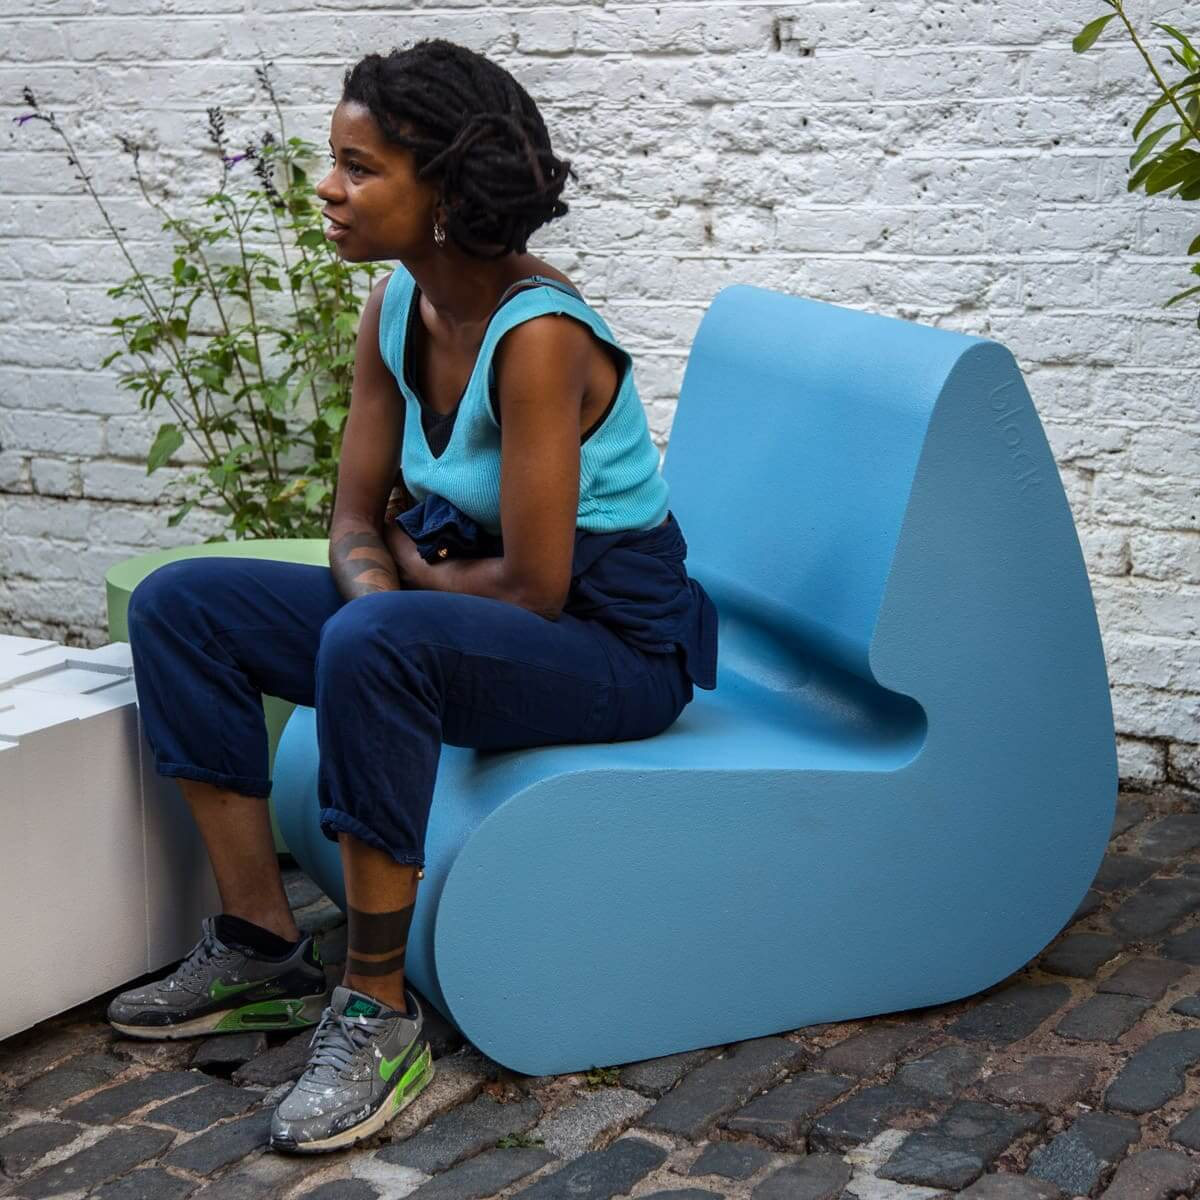 Block_lounge-chair_blue_girl_yard-sq